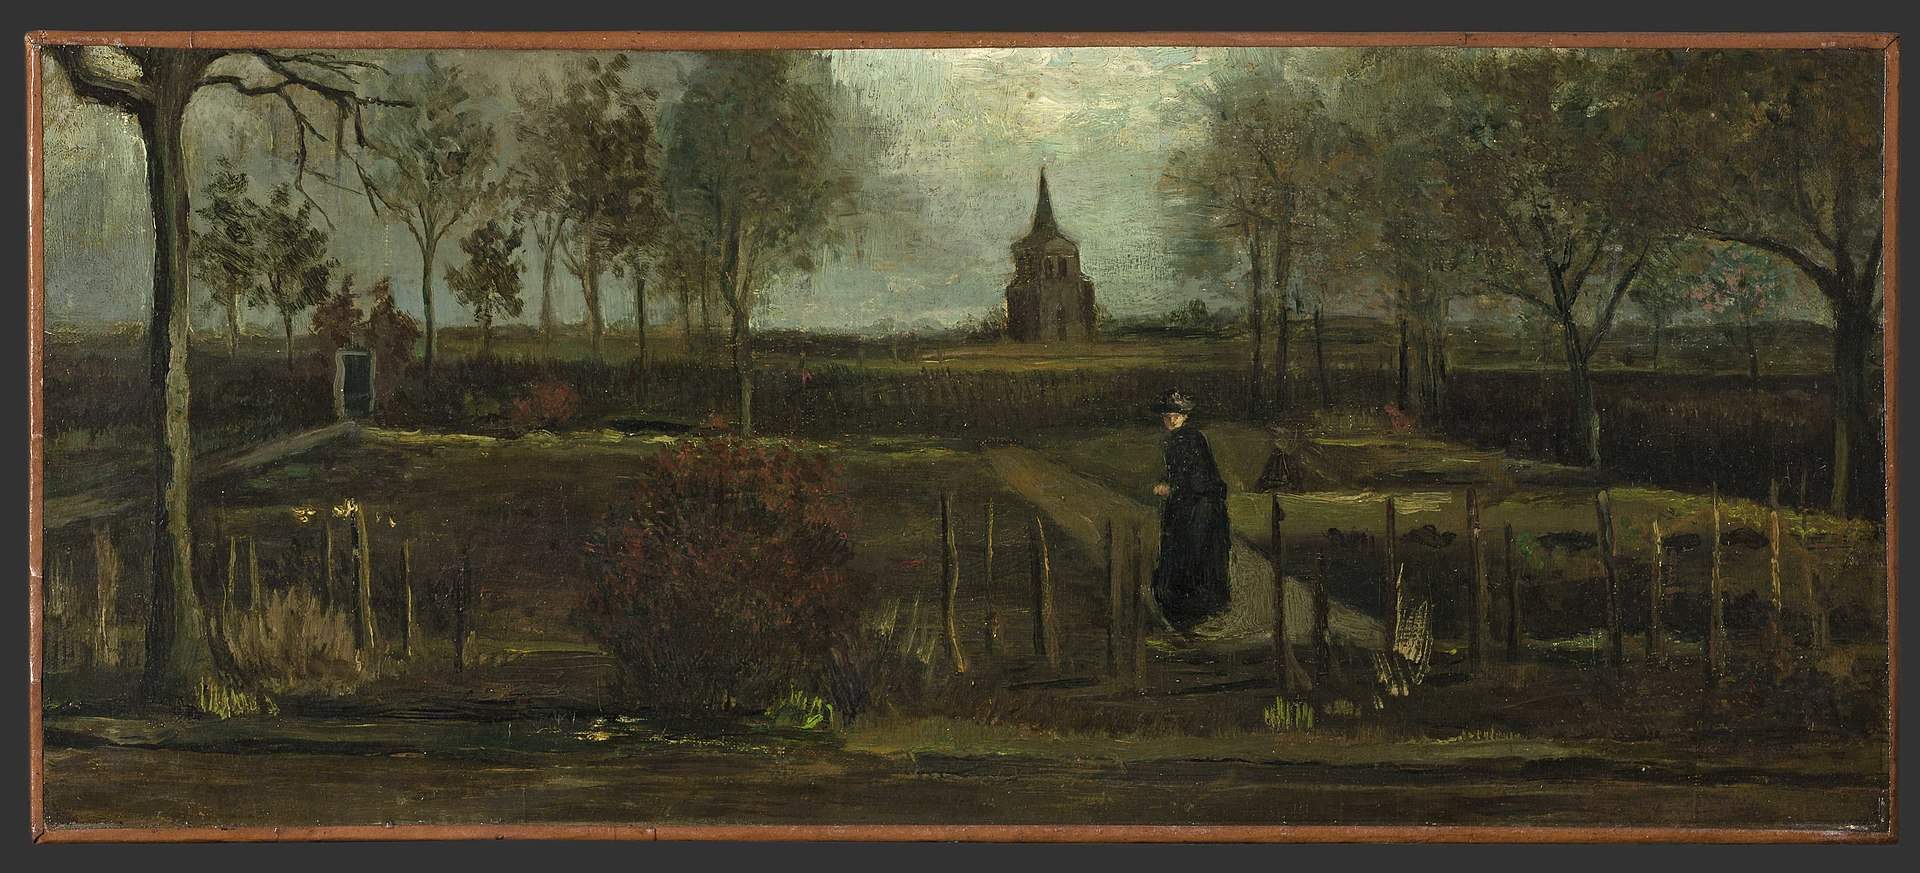 the 1884 vincent van gogh painting The Parsonage Garden at Nuenen in Spring